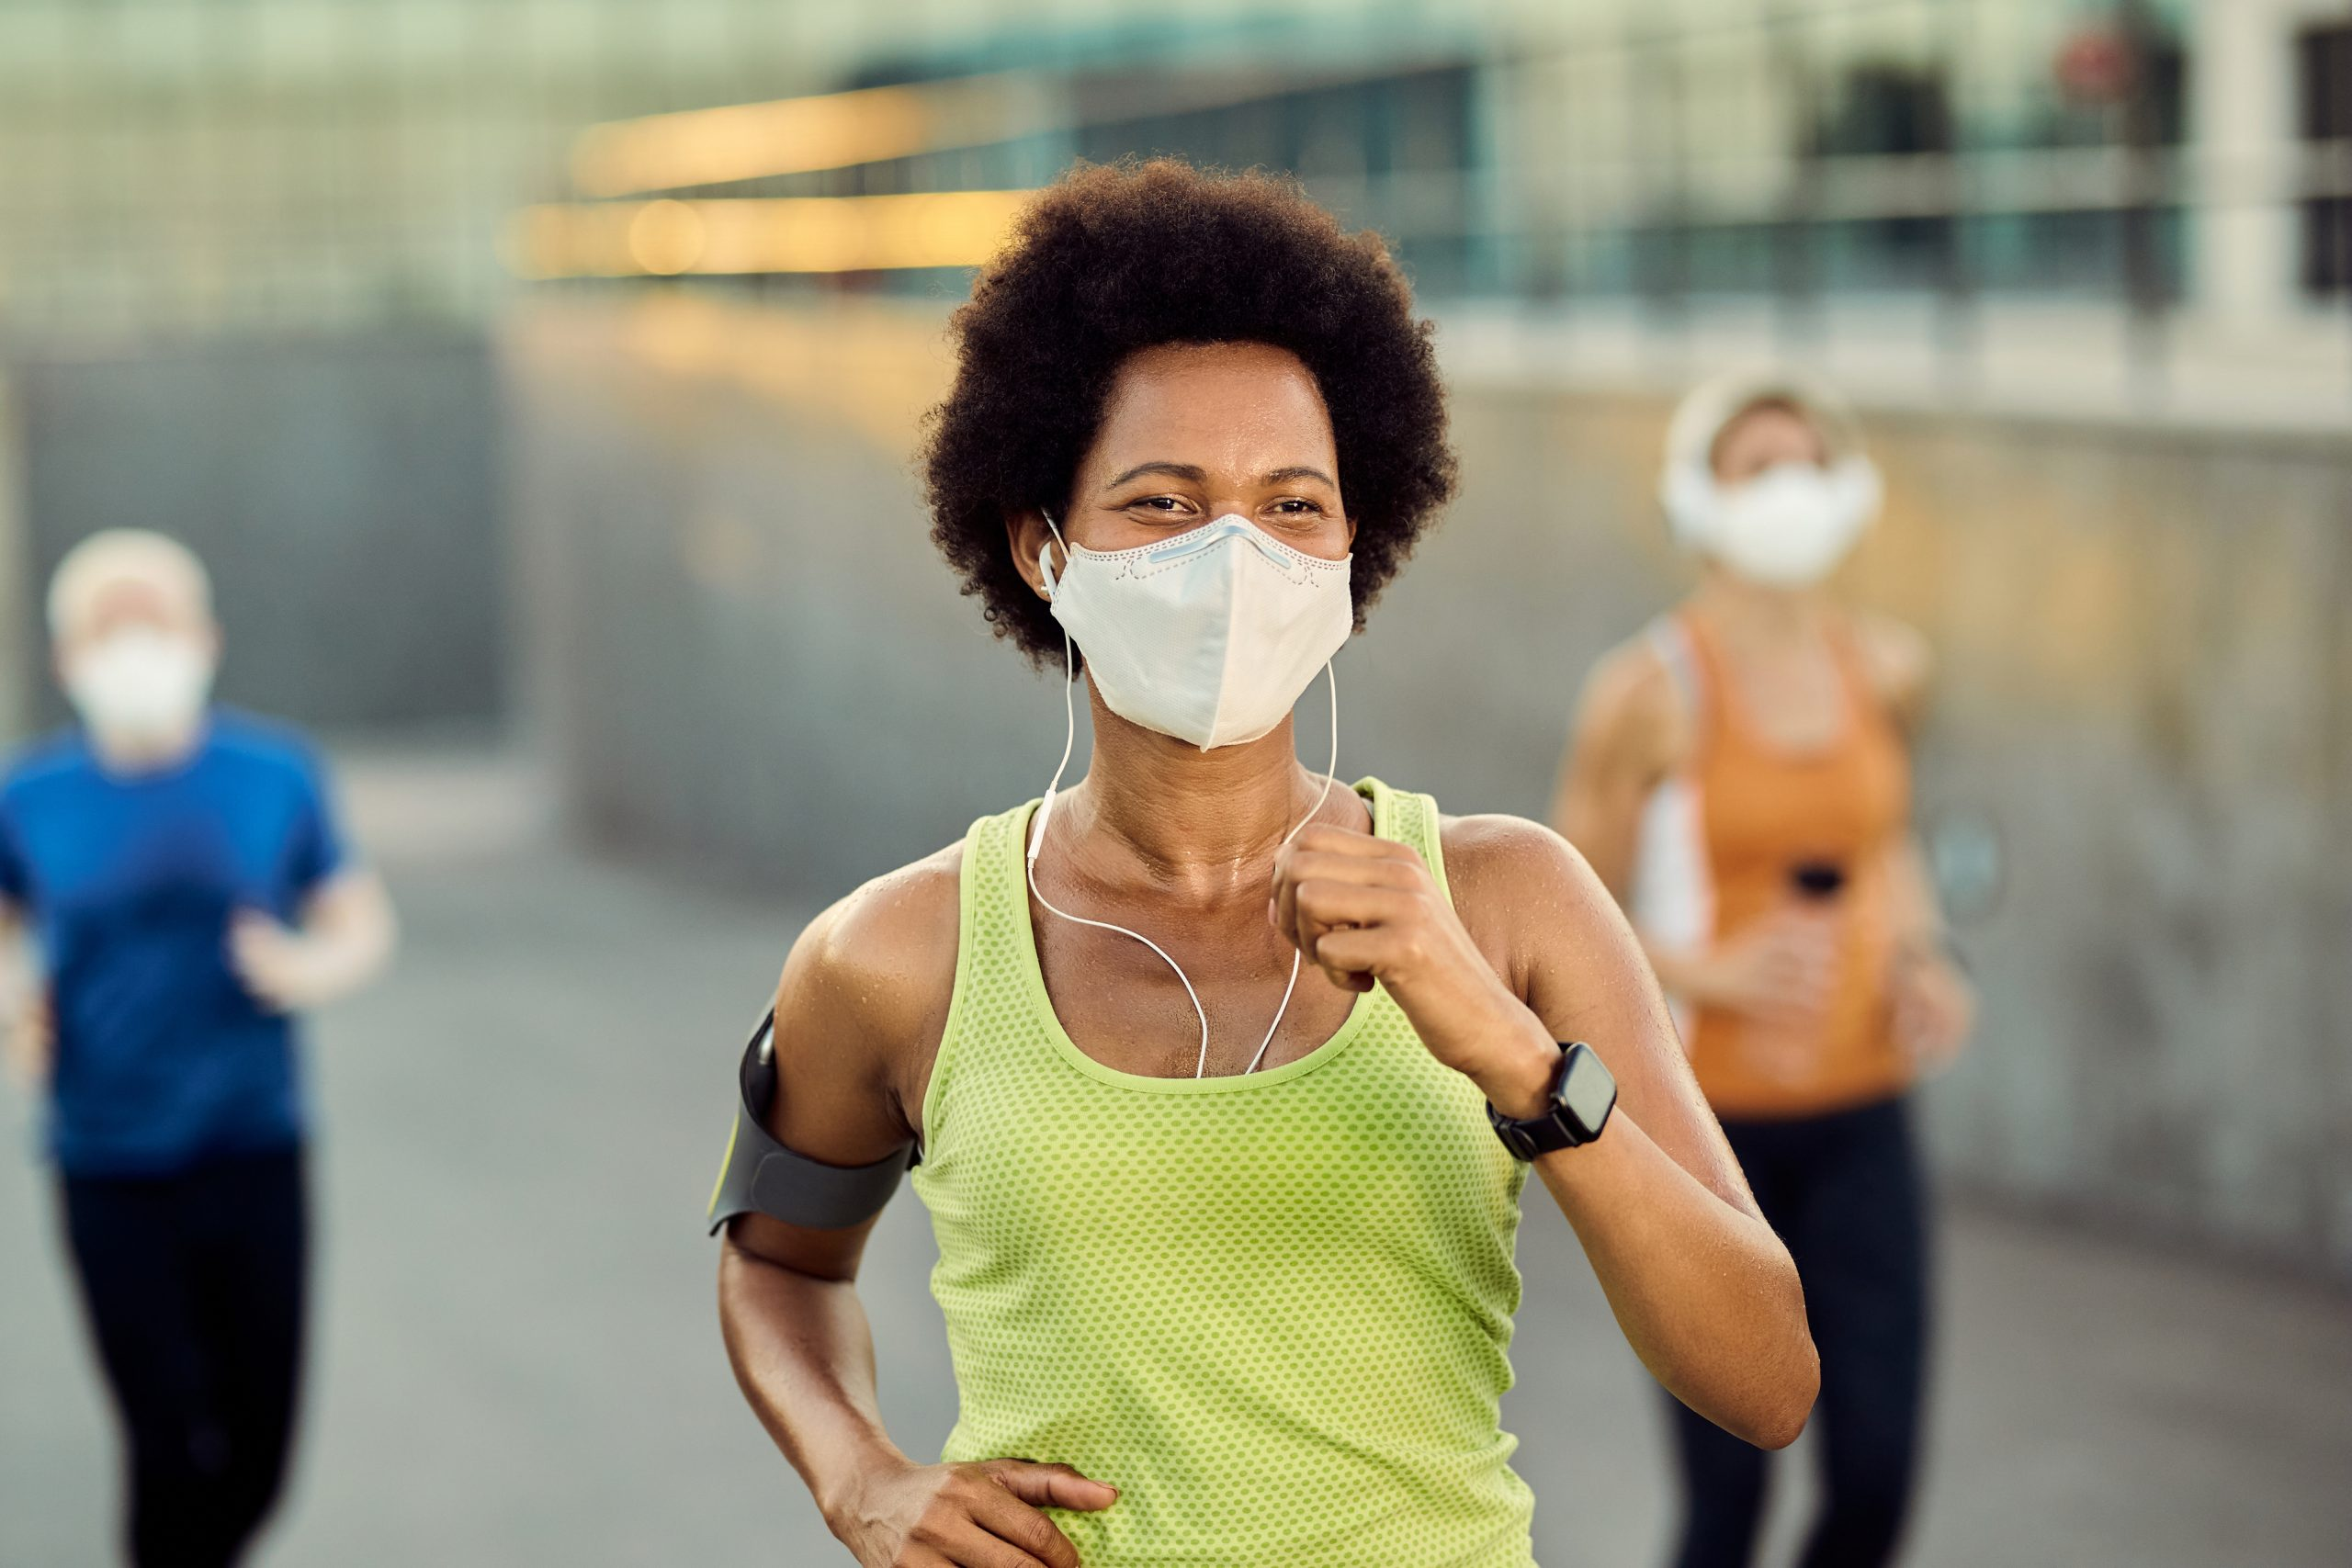 woman running with mask on